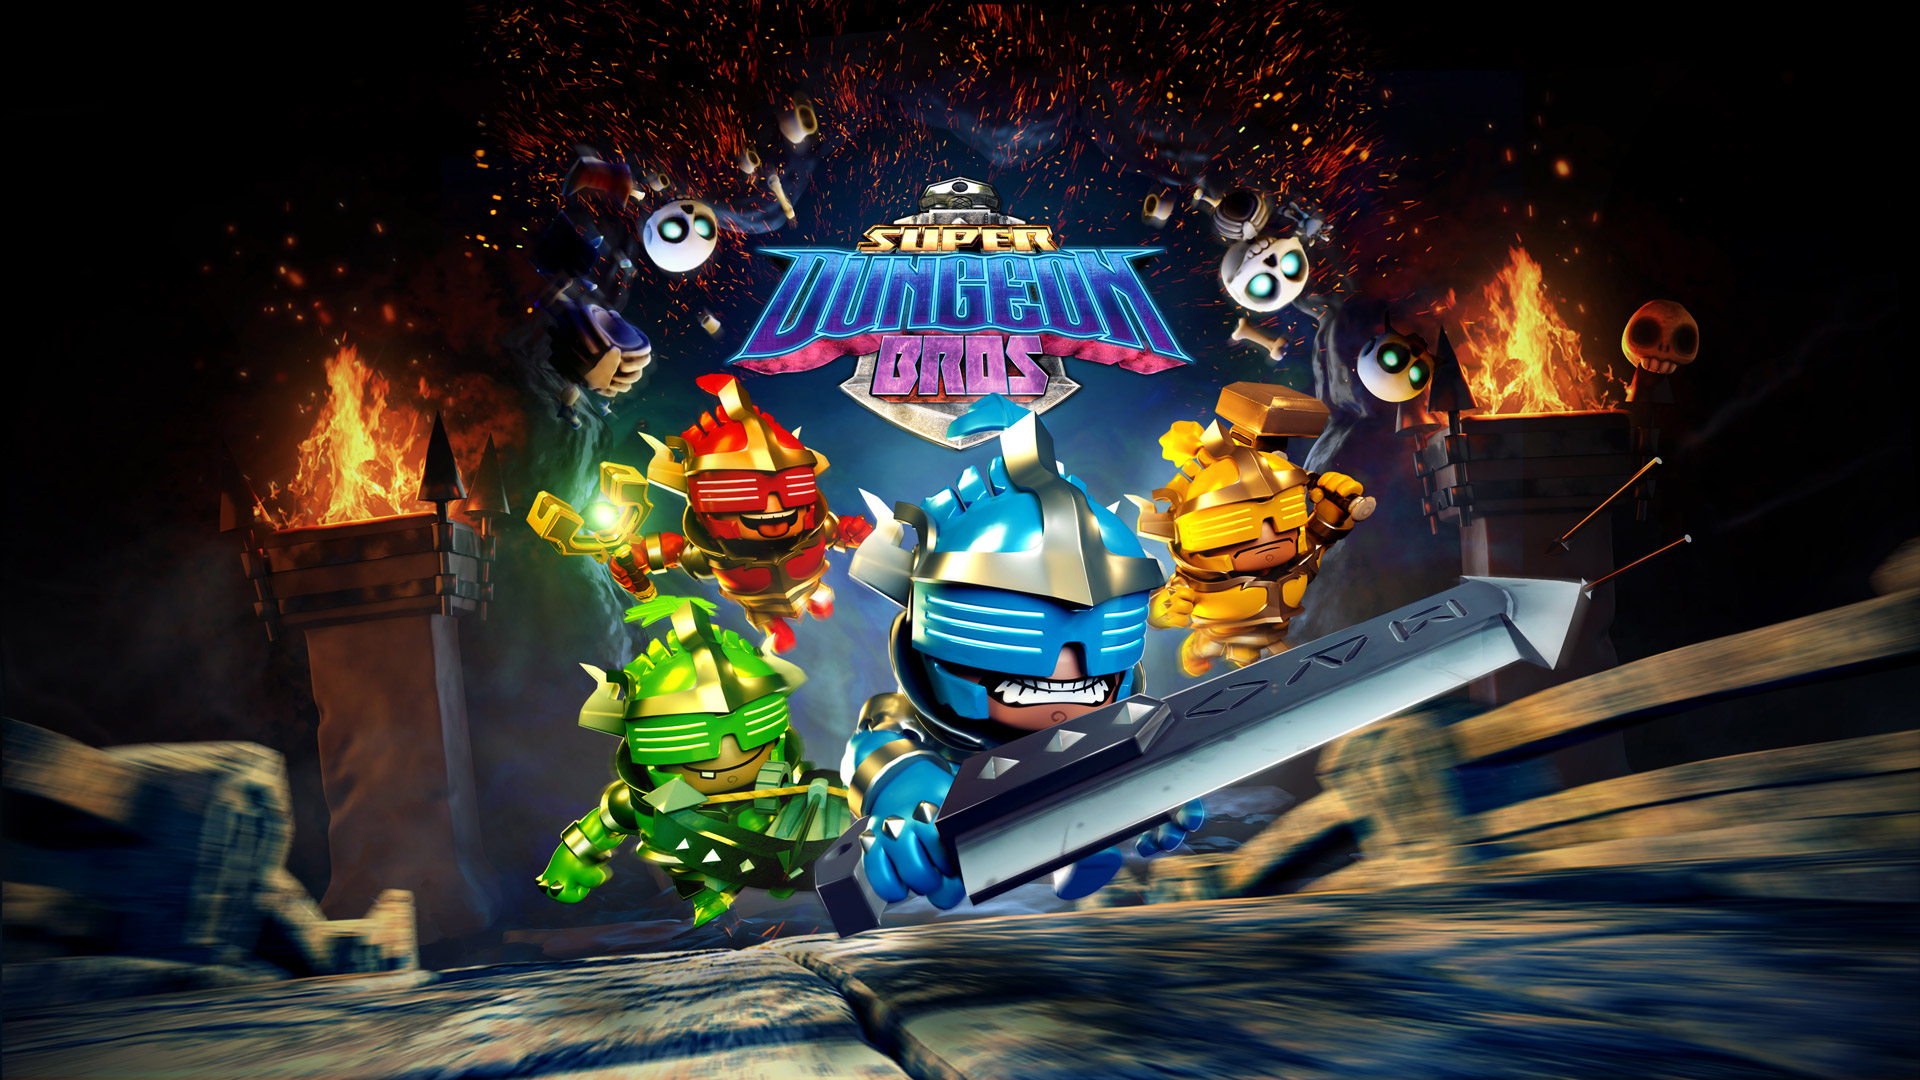 Free Super Dungeon Bros Wallpaper in 1920x1080